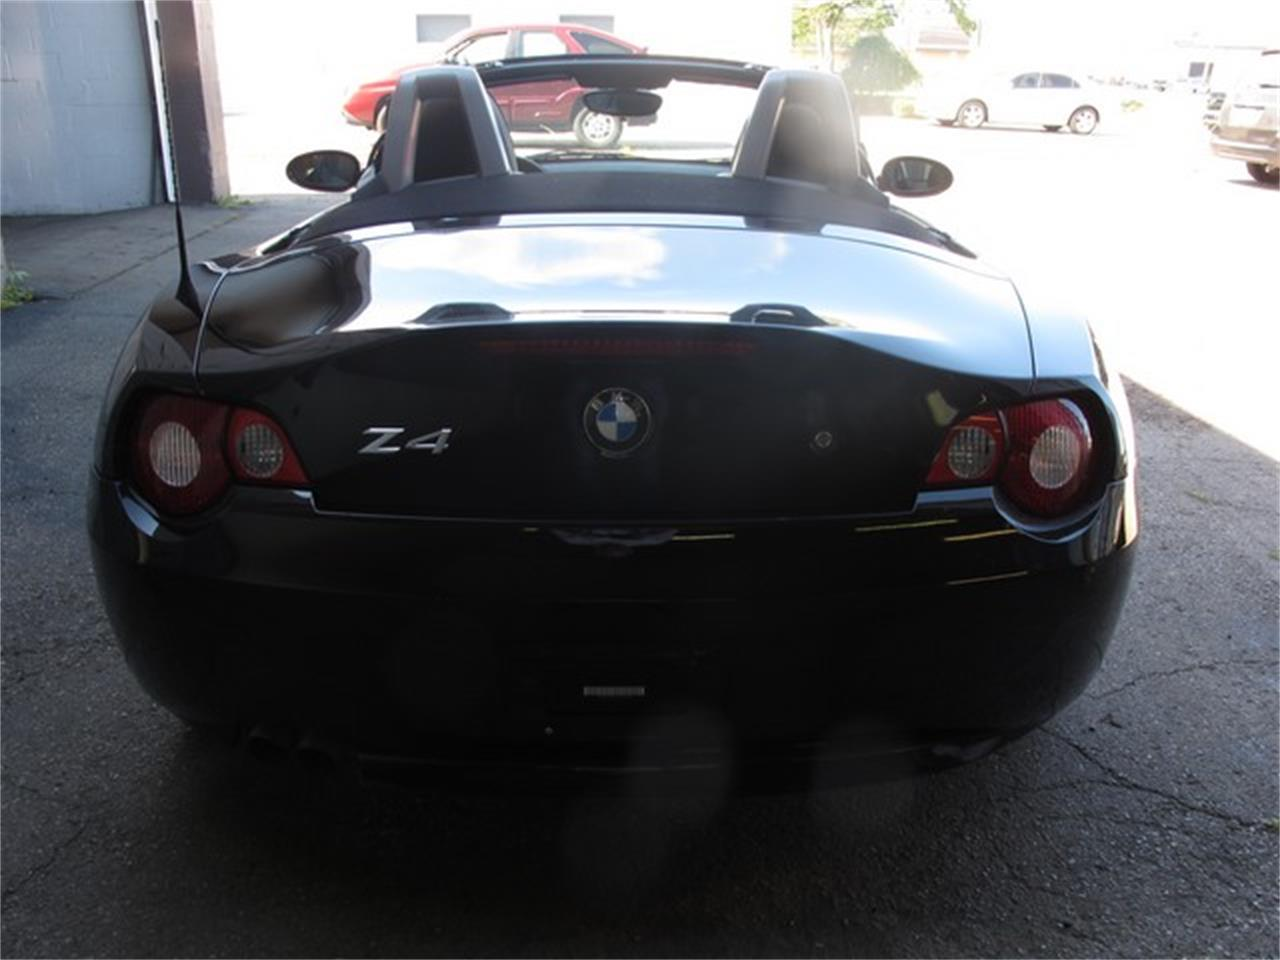 Large Picture of 2005 Z4 located in Michigan - $9,950.00 Offered by Classic Auto Showplace - NUY8